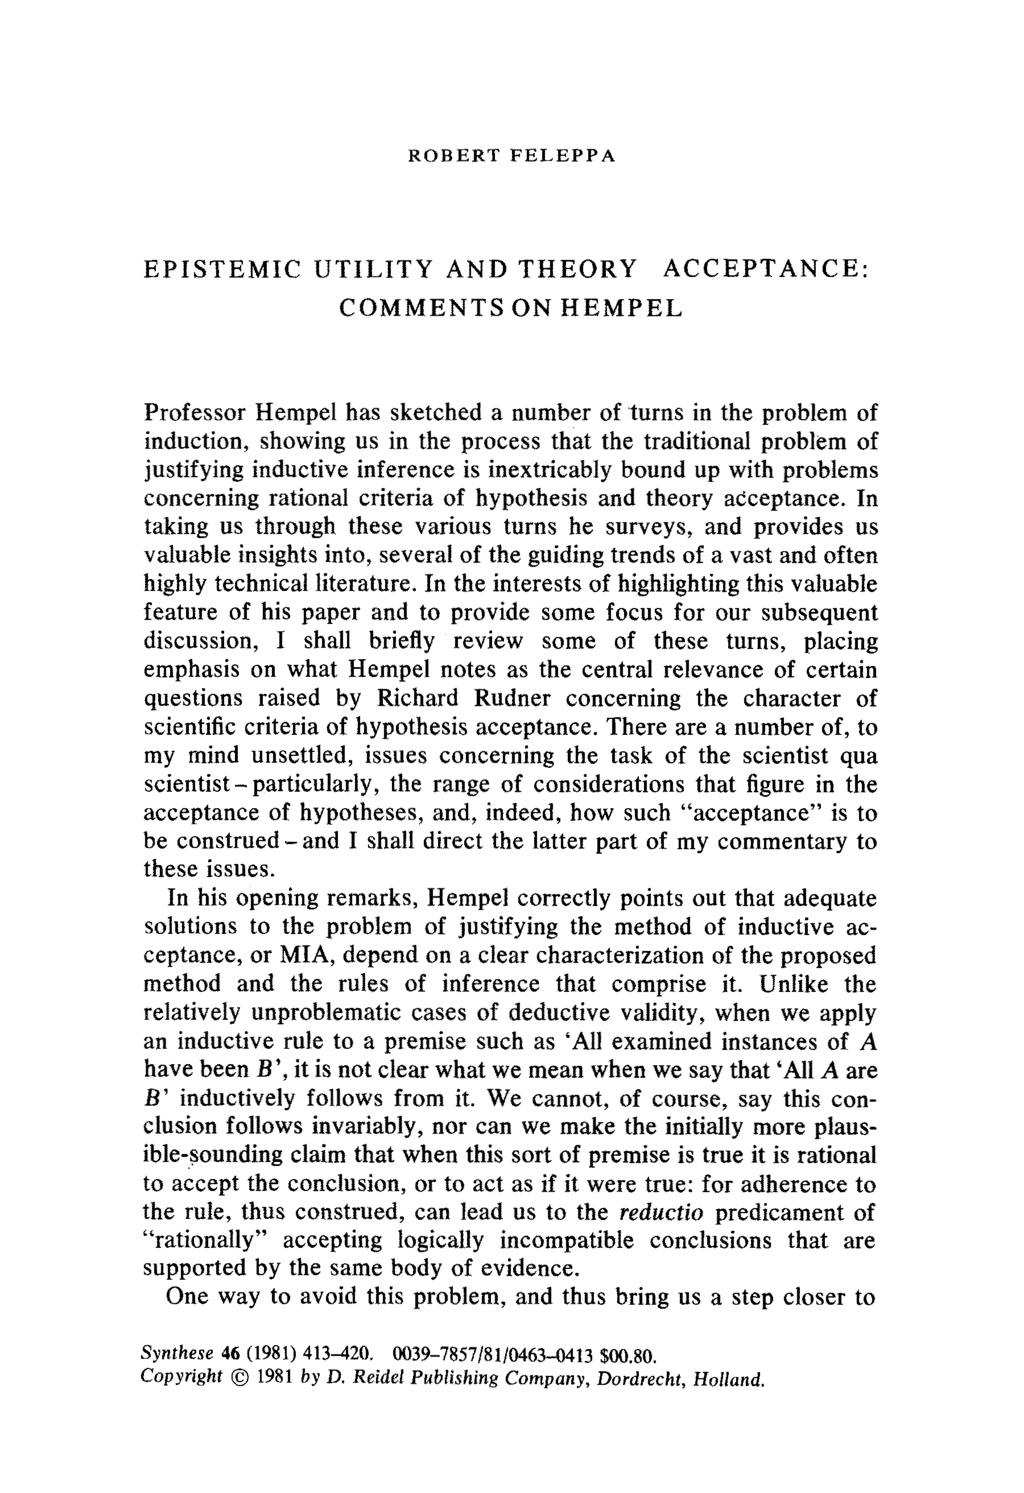 ROBERT FELEPPA EPISTEMIC UTILITY AND THEORY ACCEPTANCE: COMMENTS ON HEMPEL Professor Hempel has sketched a number of turns in the problem of induction, showing us in the process that the traditional